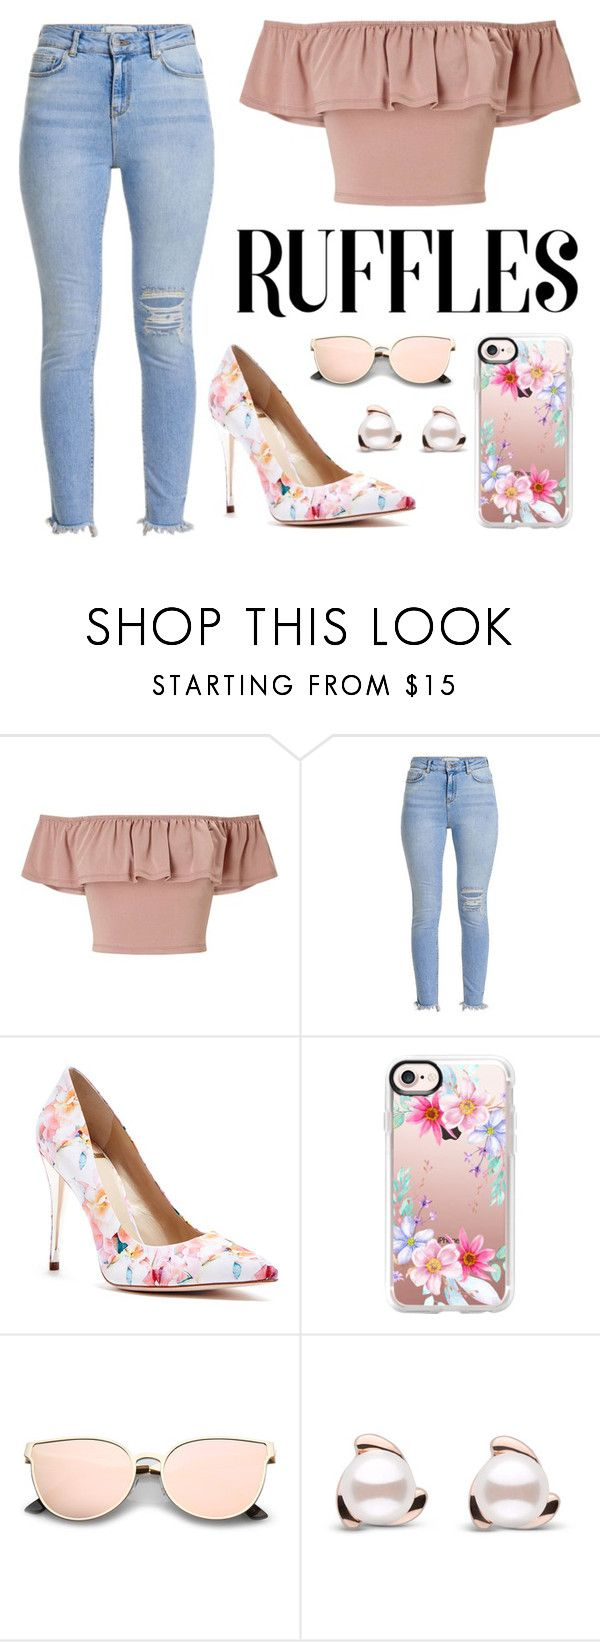 """""""Untitled #112"""" by the-idiot-next-door ❤ liked on Polyvore featuring Miss Selfridge, GUESS by Marciano and Casetify"""